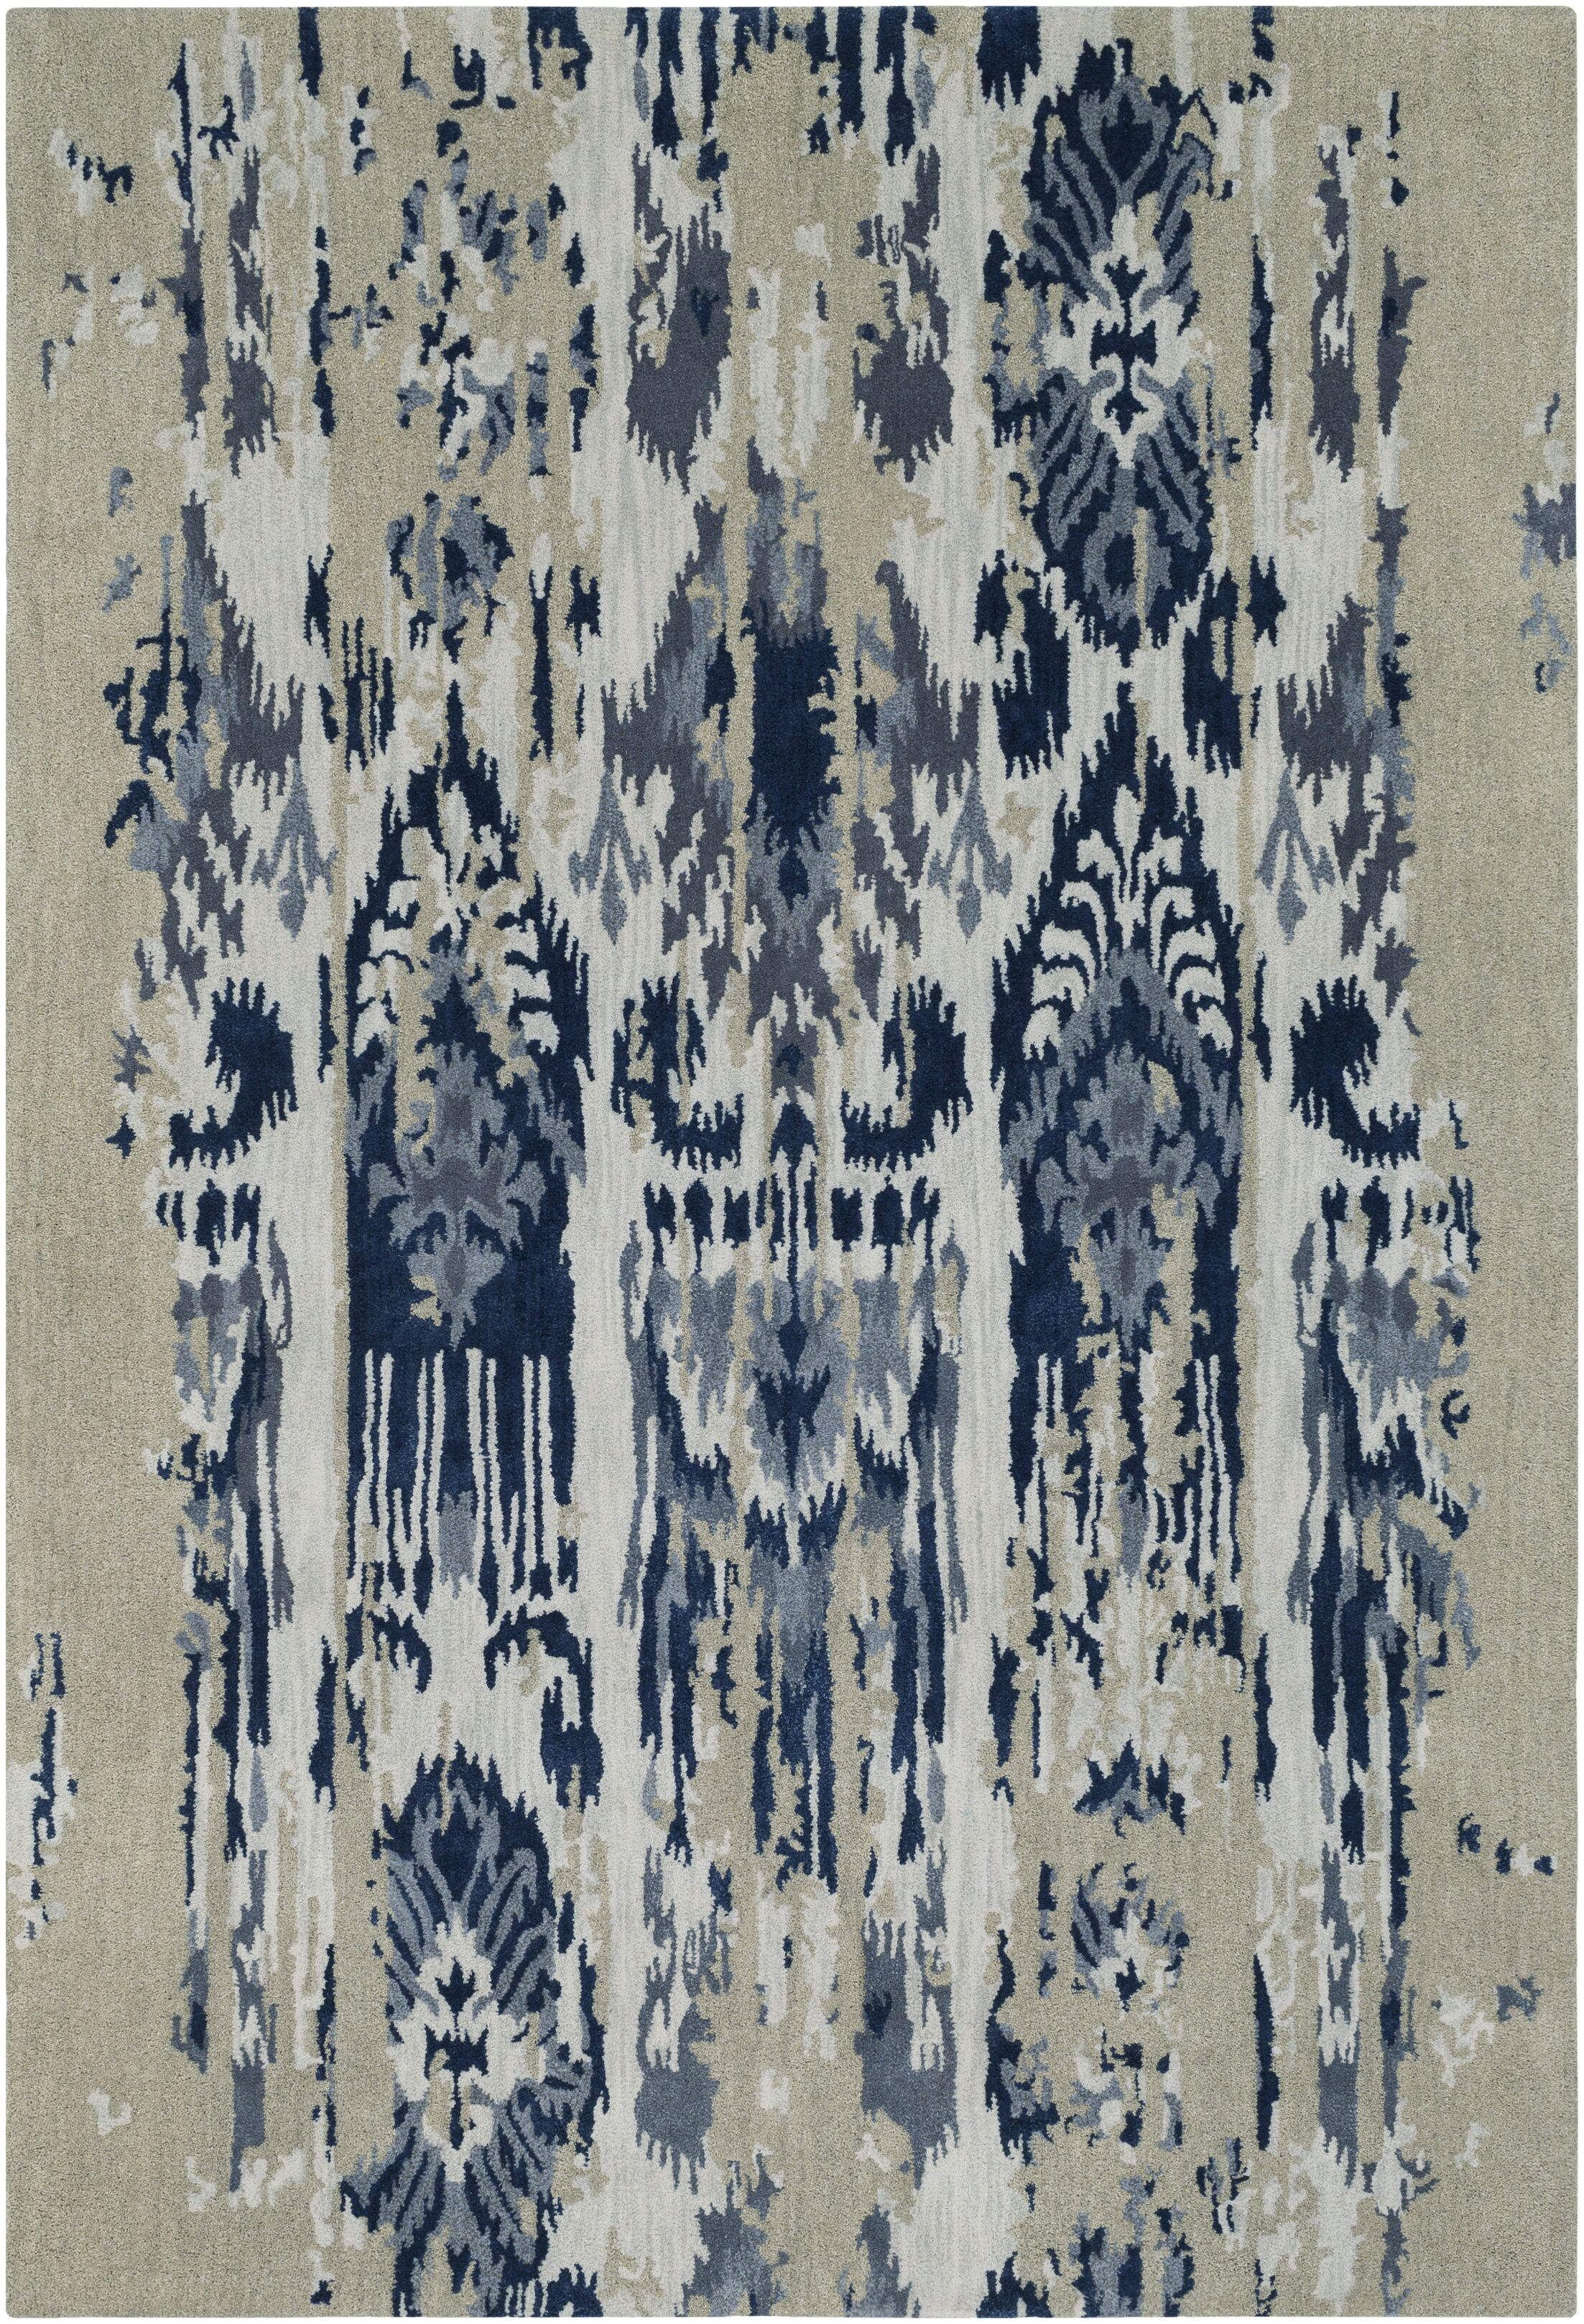 Corinne Hand-Tufted Medium Gray/Navy Area Rug Rug Size: Rectangle 2' x 3'